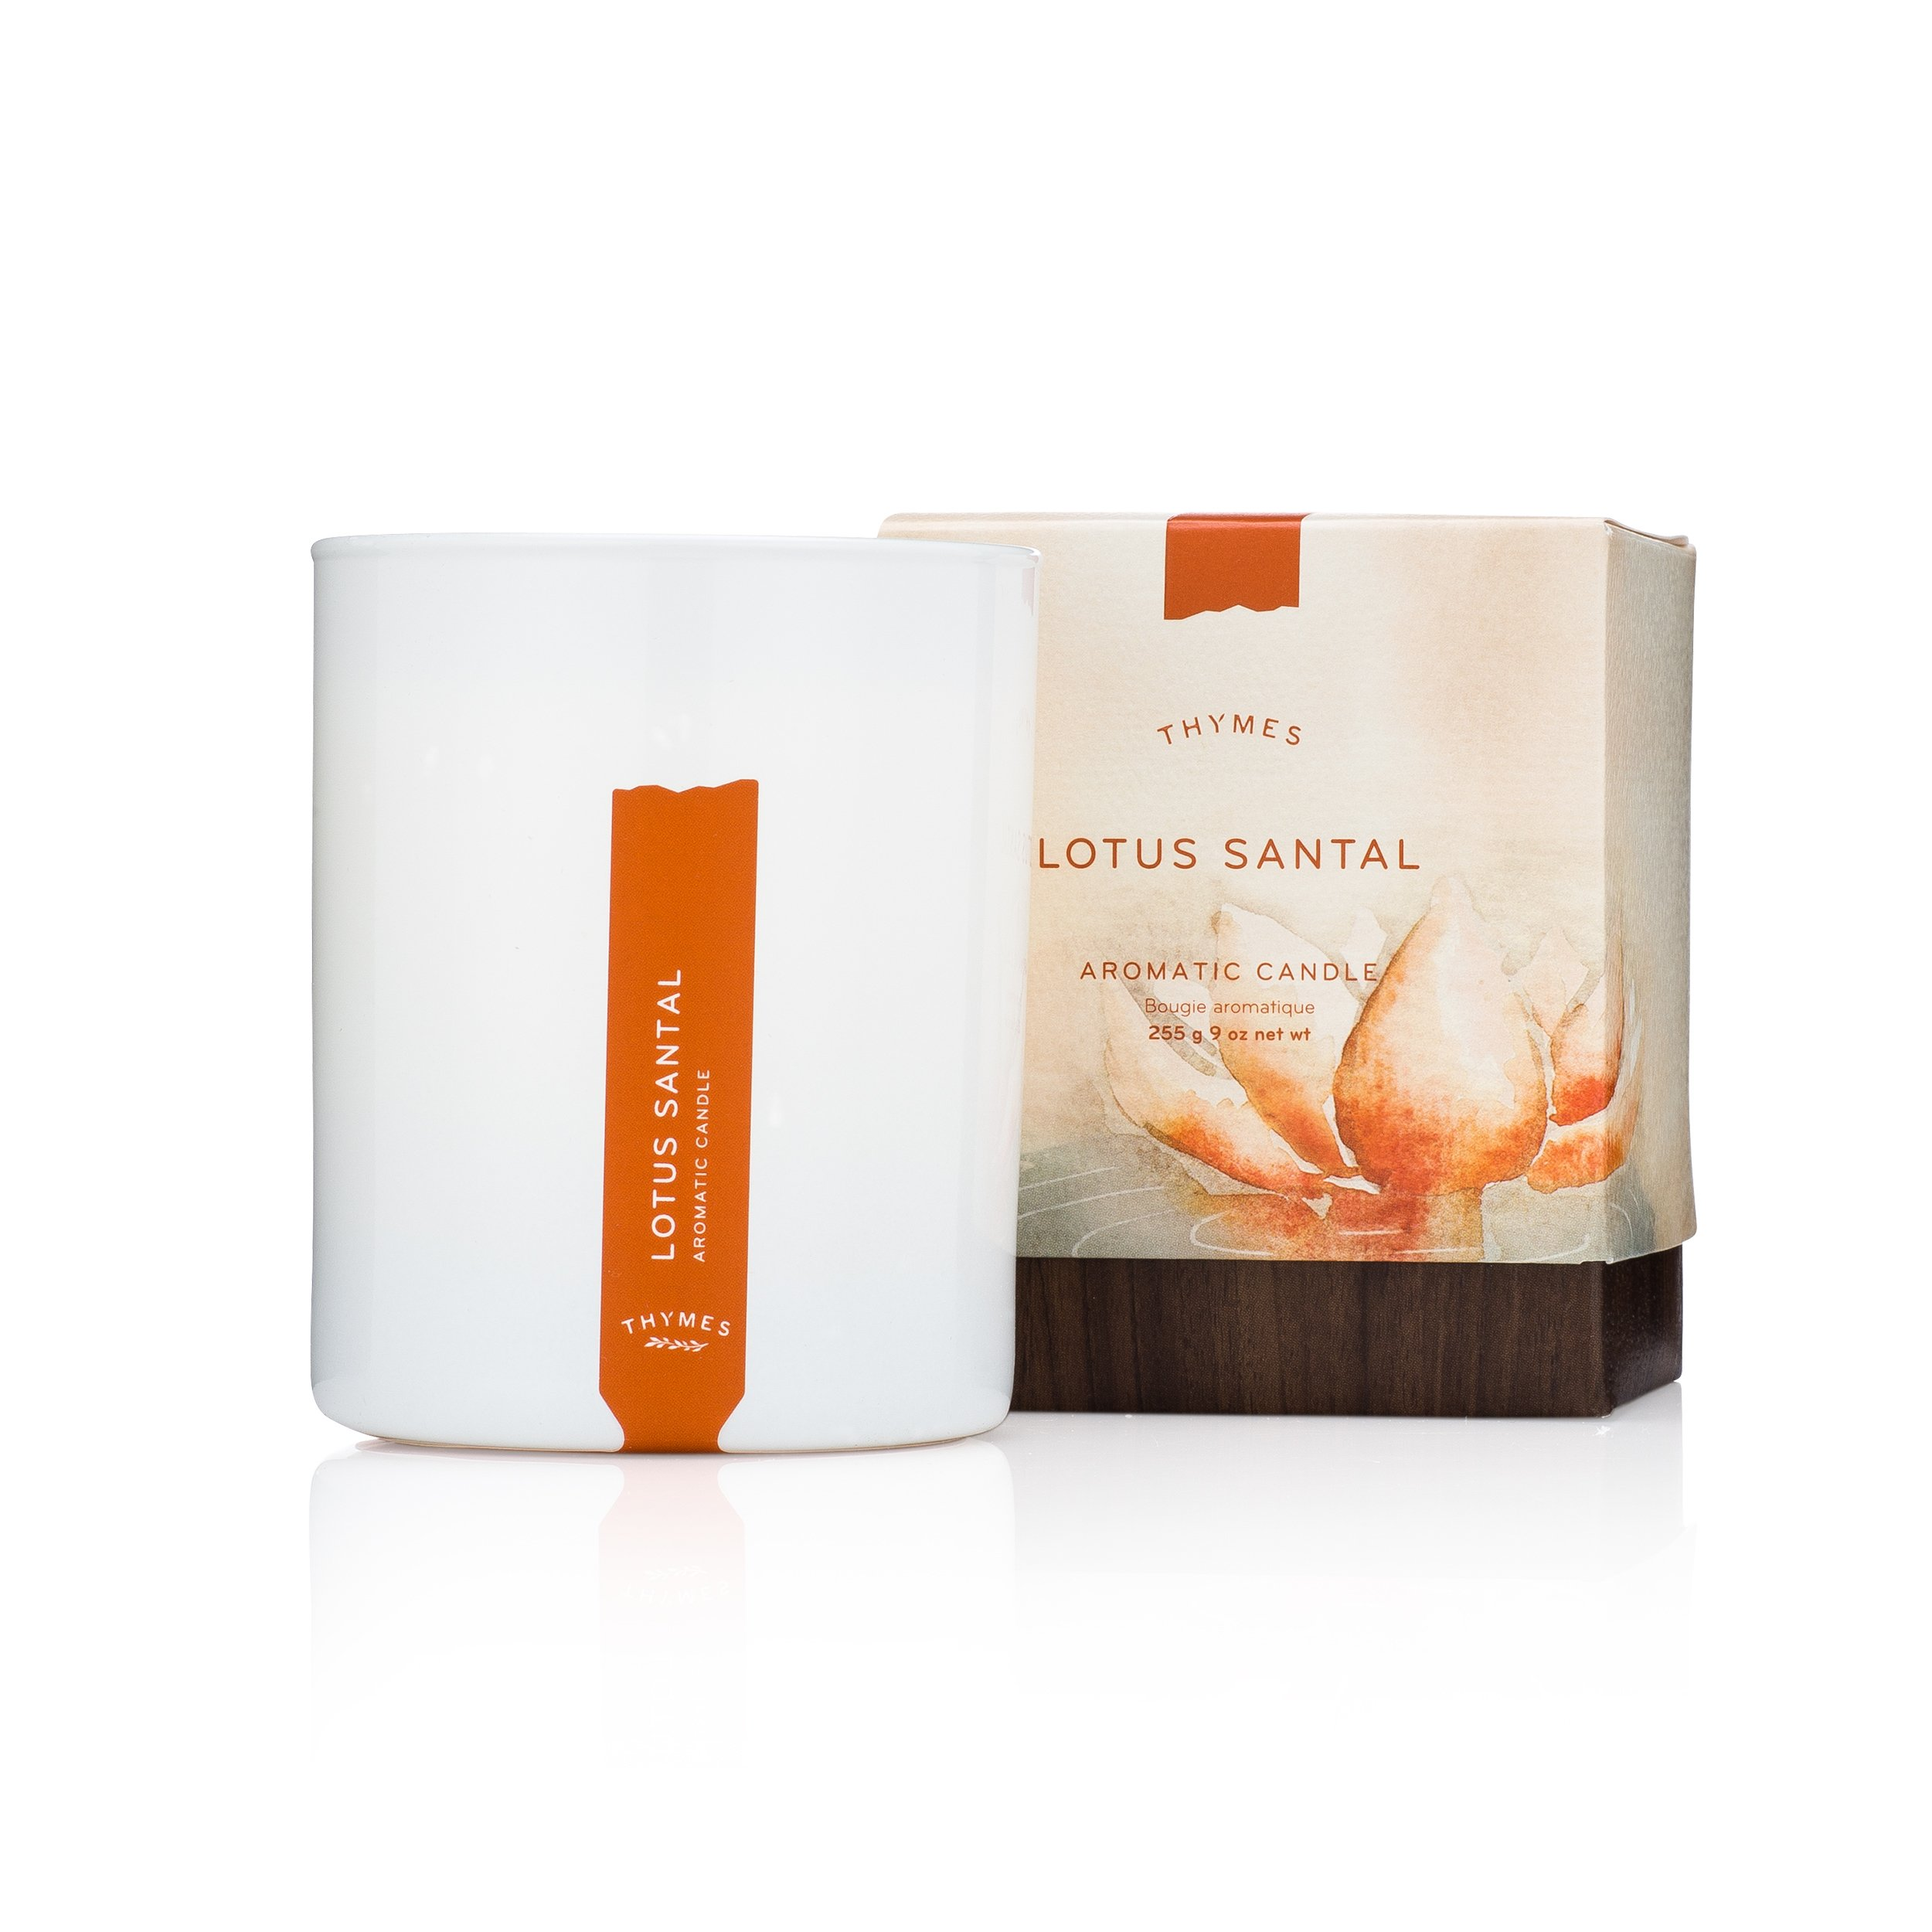 Thymes - Lotus Santal Aromatic Scented Candle - Long Lasting Sandalwood Scent with Gift Box - 9 oz